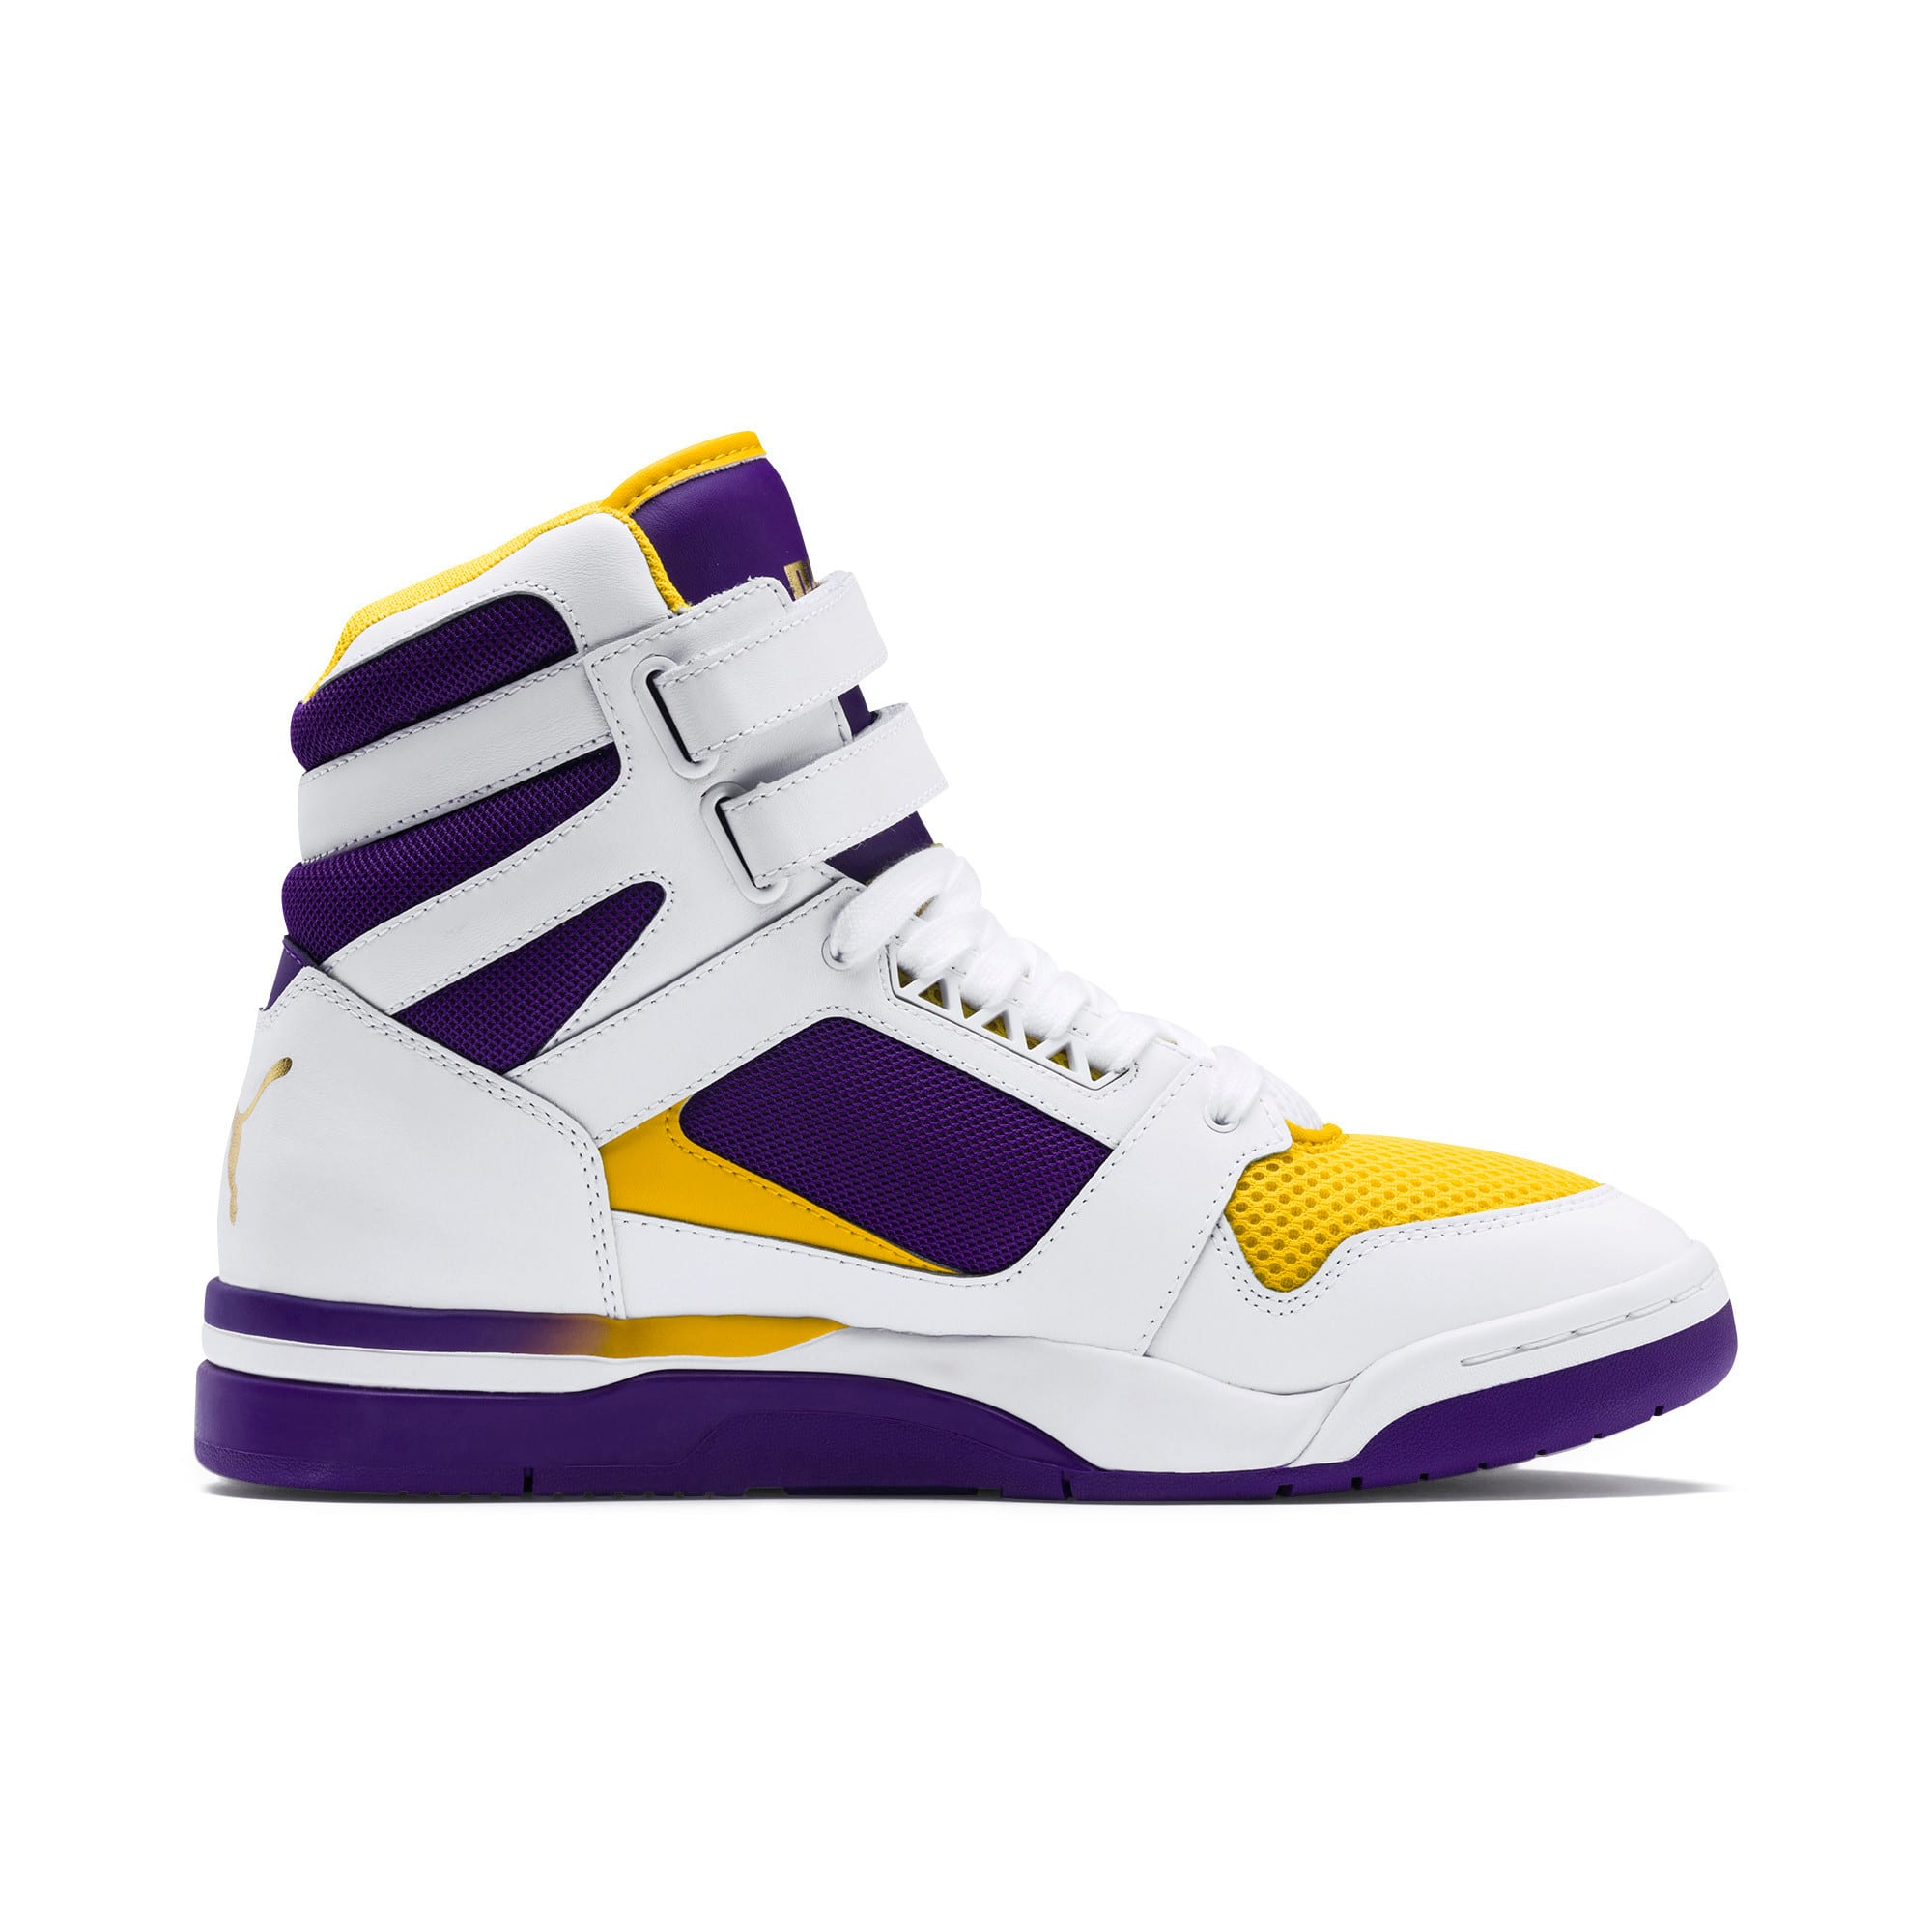 Thumbnail 5 of Palace Guard Mid Finals Sneakers, Puma White-Prism Violet-, medium